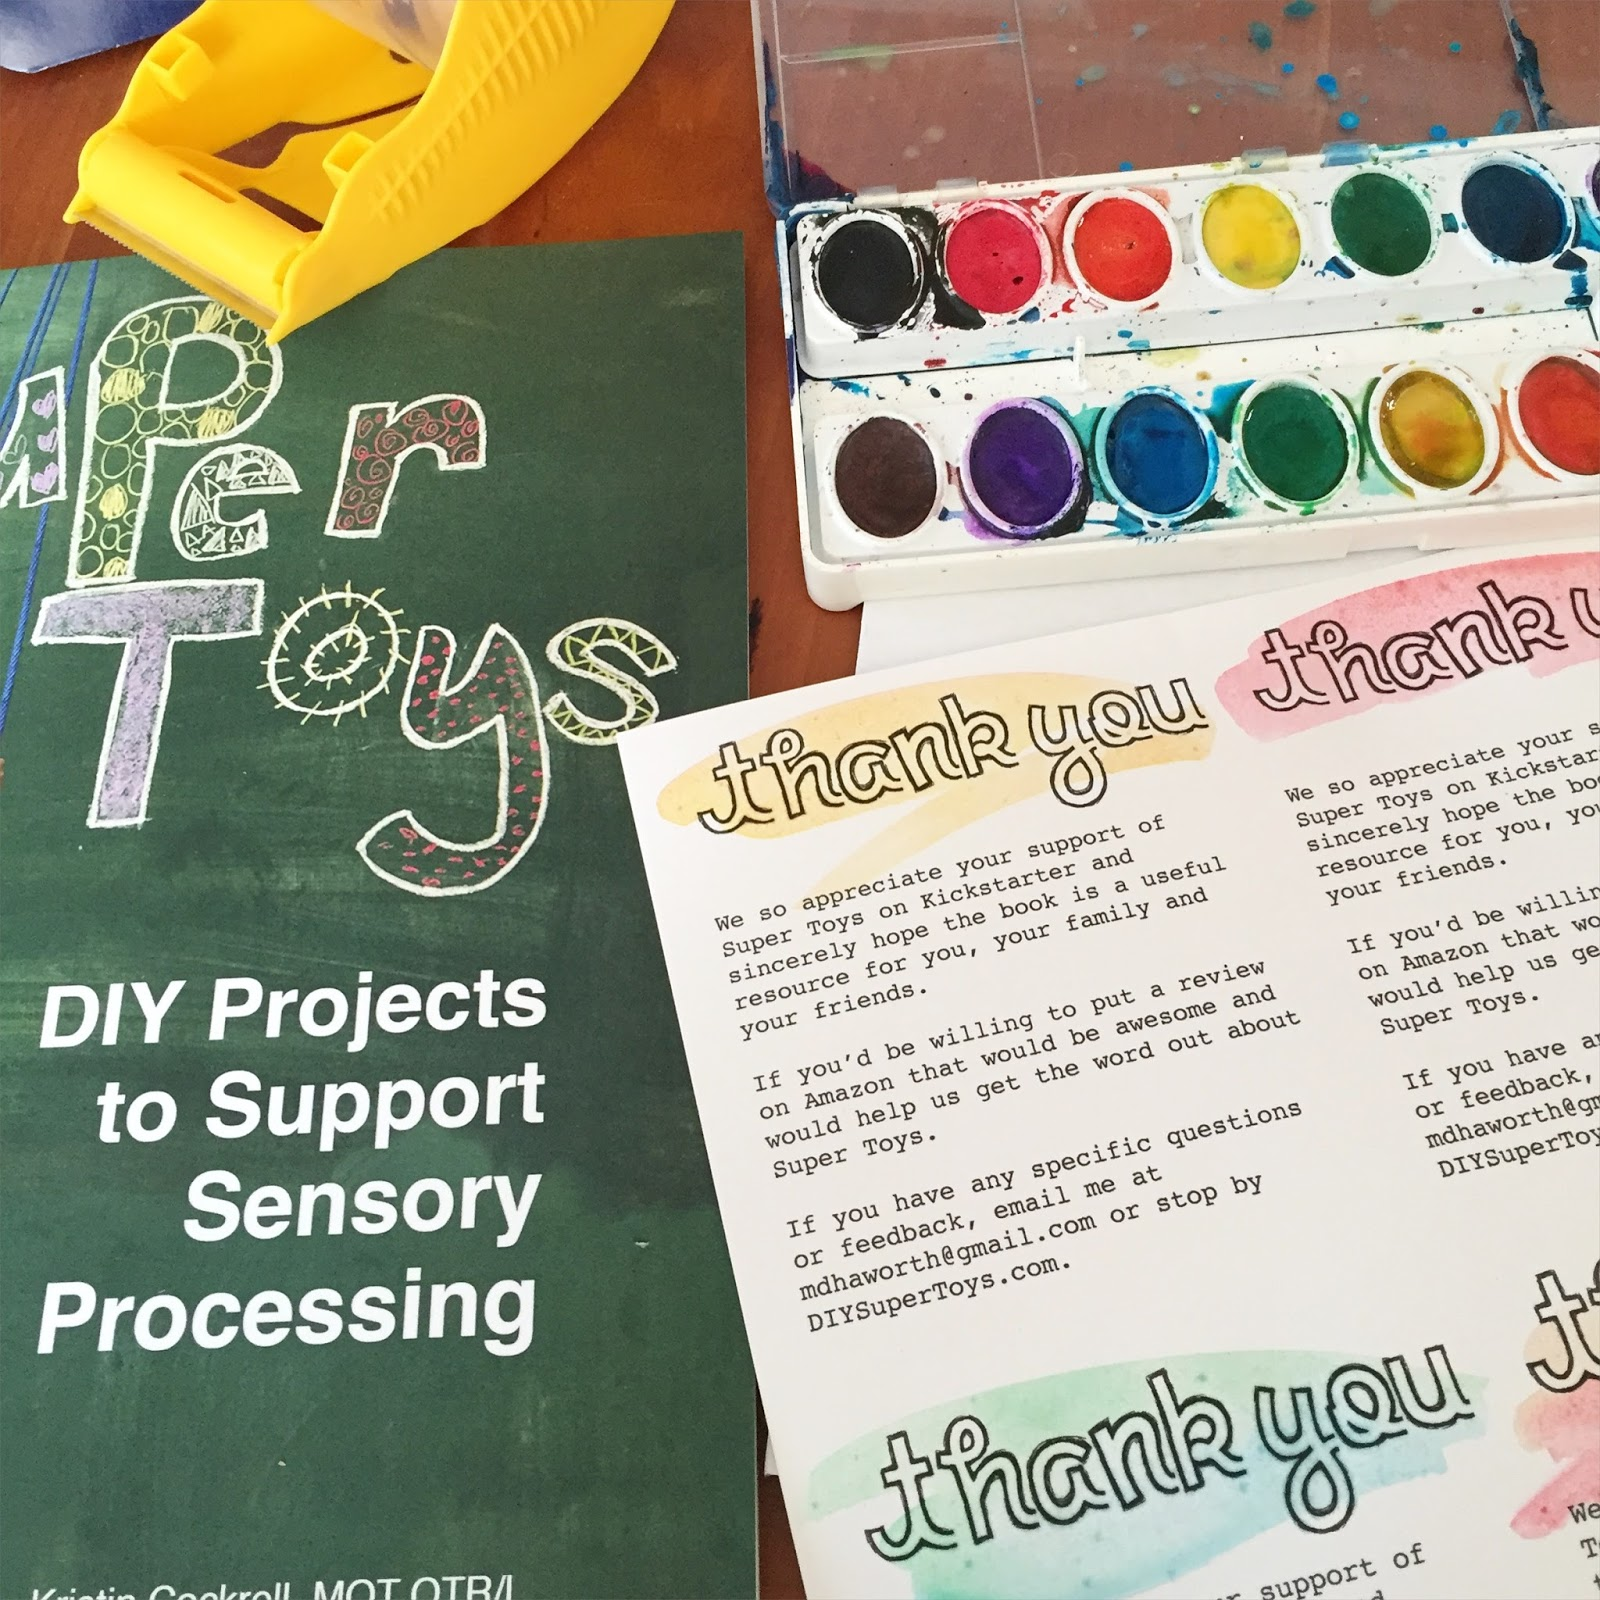 Super Toys DIY Projects to Support Sensory Processing